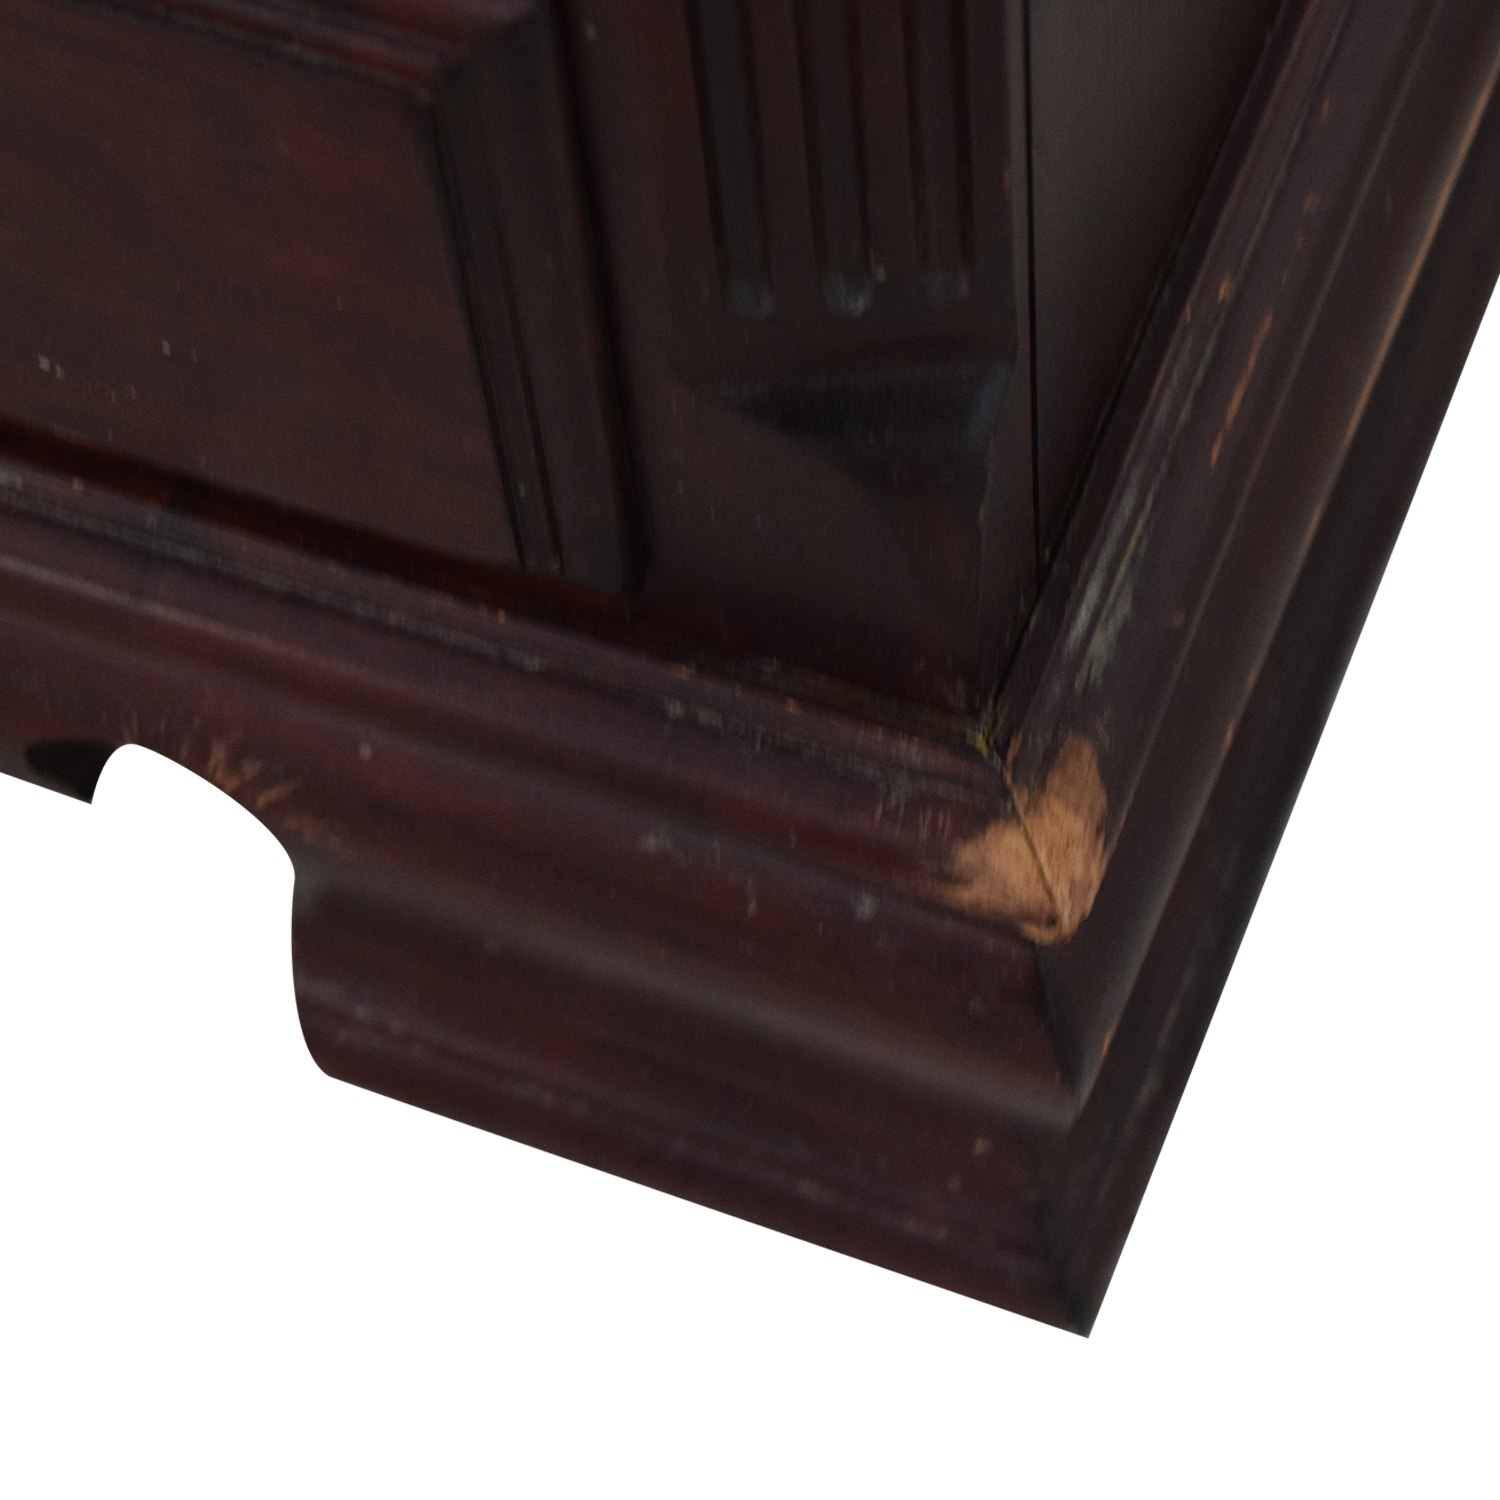 Heirloom Traditions Two-Drawer End Tables dimensions